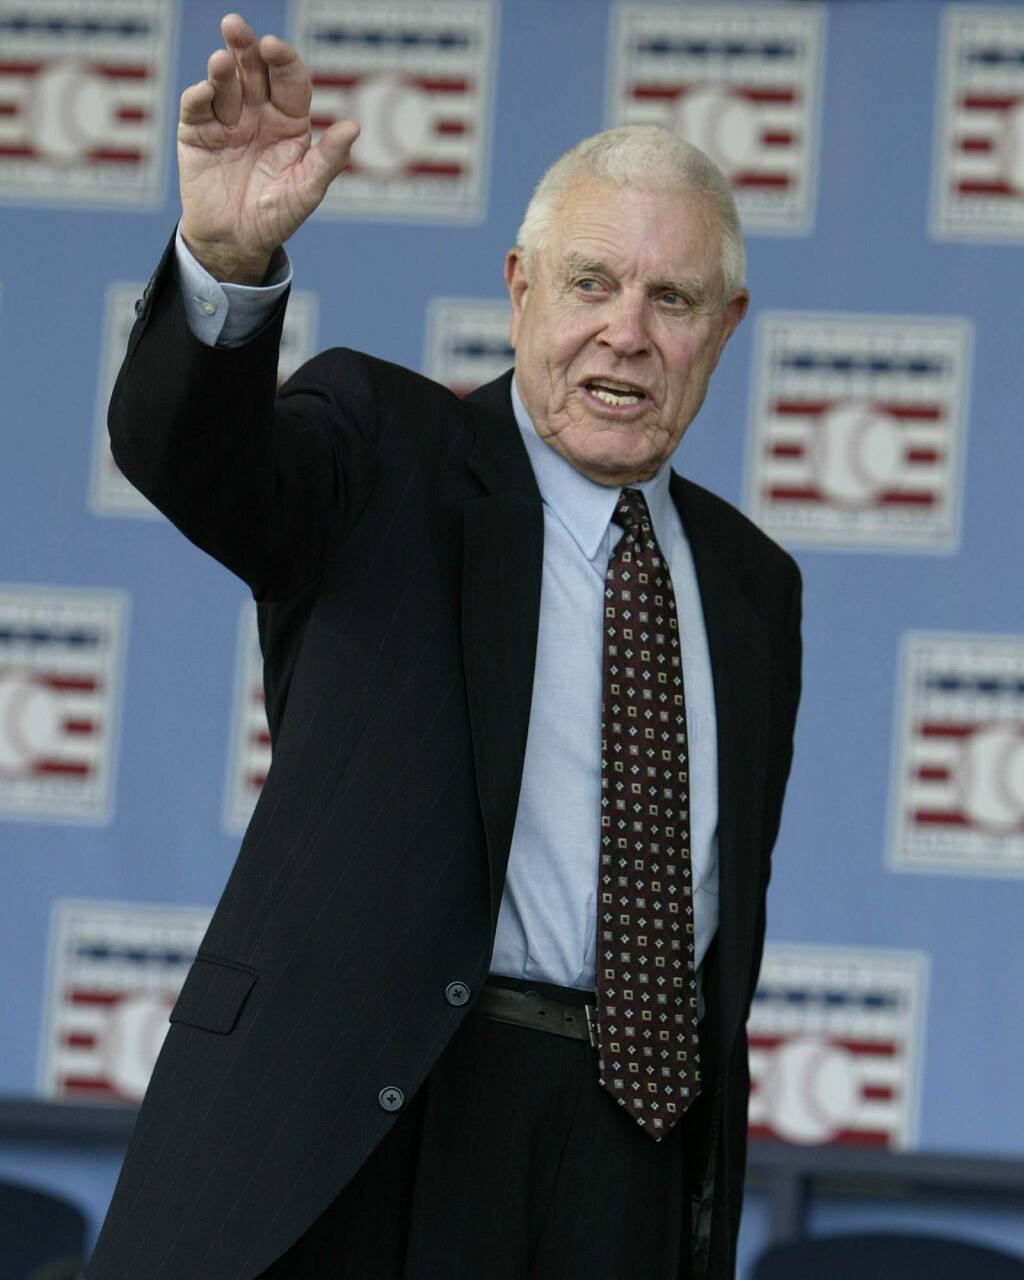 In this July 25, 2004, file photo, broadcaster Lon Simmons, the longtime voice of baseball in the San Francisco Bay area, waves at the end of the 2004 National Baseball Hall of Fame induction ceremonies in Cooperstown, N.Y. The Giants announced that Simmons had died Sunday, April 5, 2015. He was 91. (AP Photo/John Dunn, File)